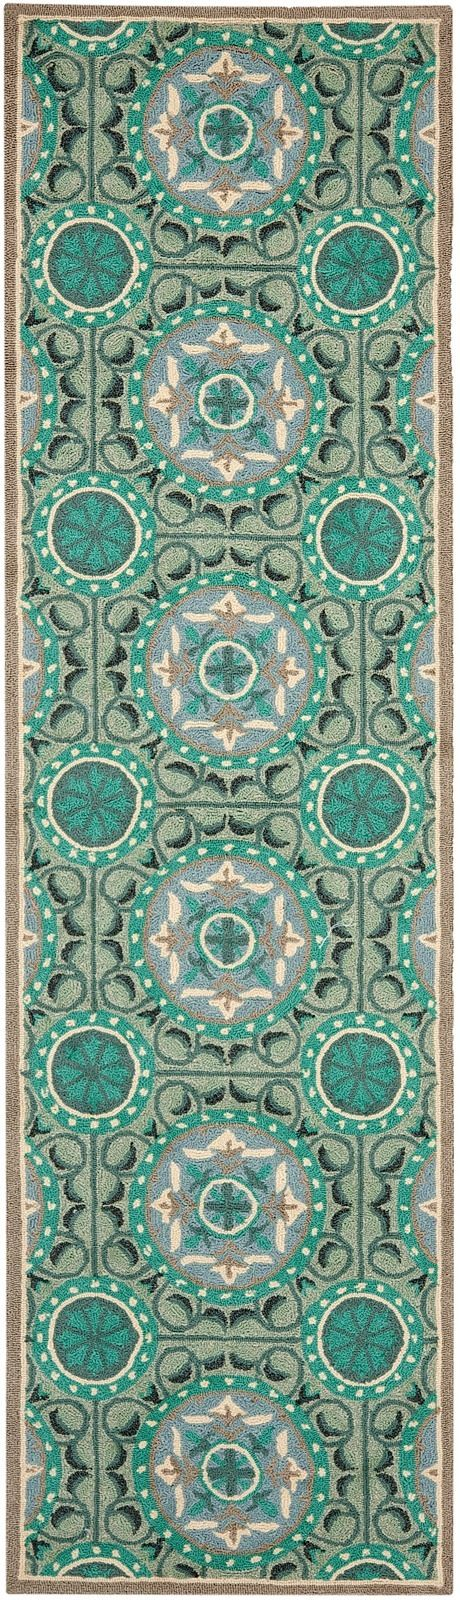 safavieh four seasons contemporary area rug collection